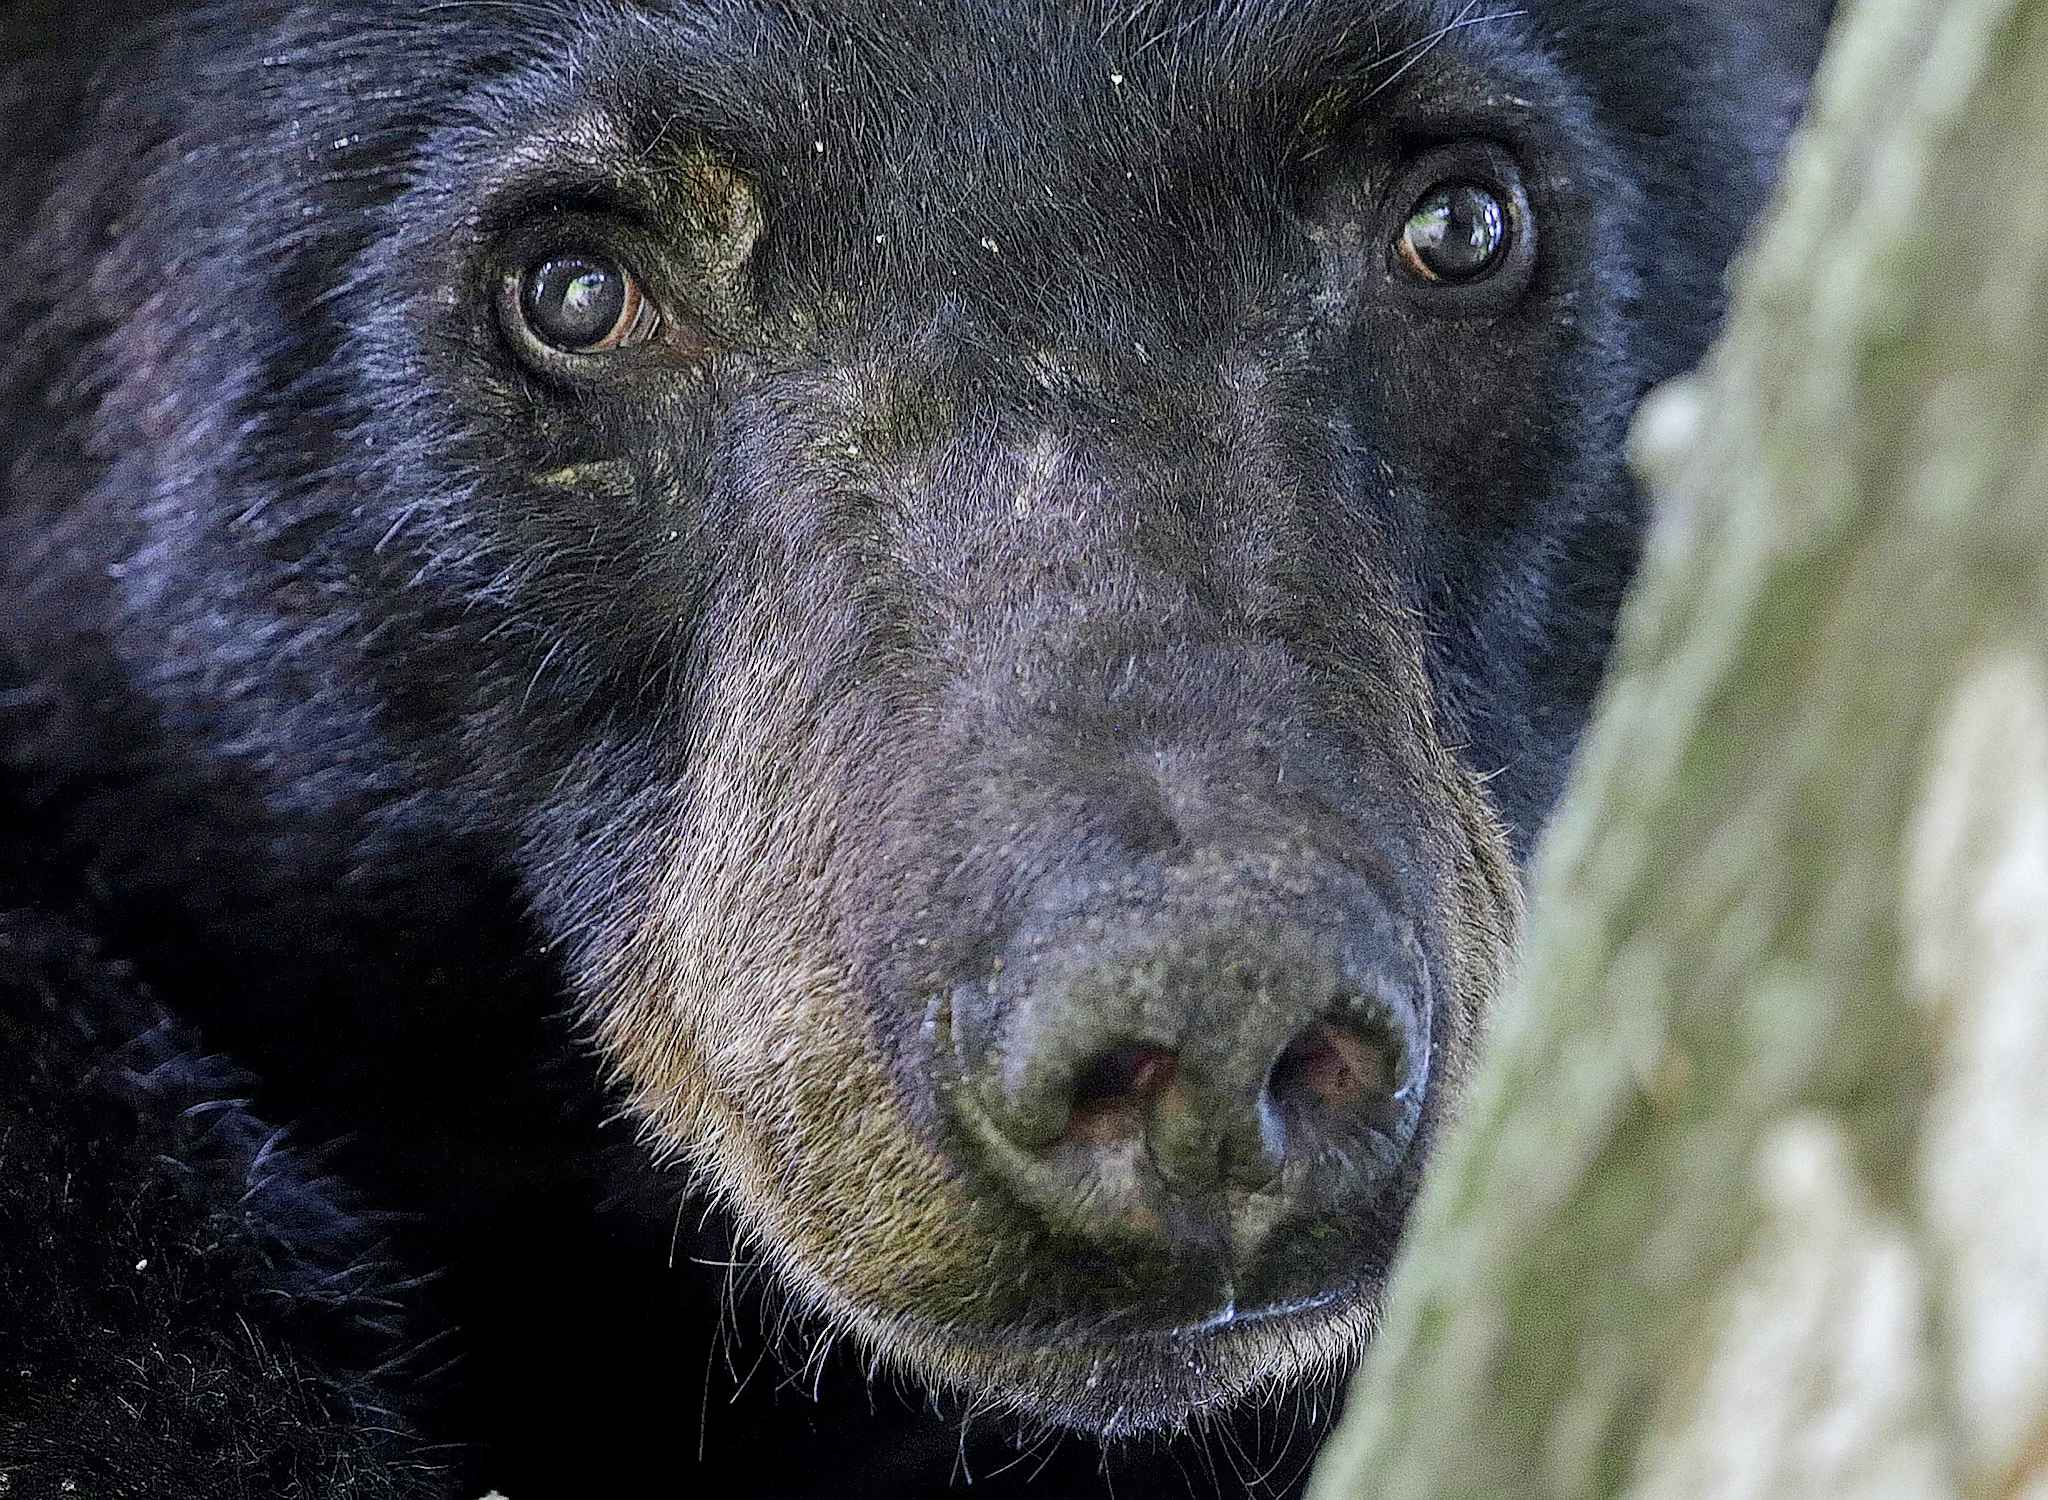 There have been two other reported incidents where bears have attacked people in Whiteshell Provincial Park this month. (Gerald Herbert / The Associated Press Files)